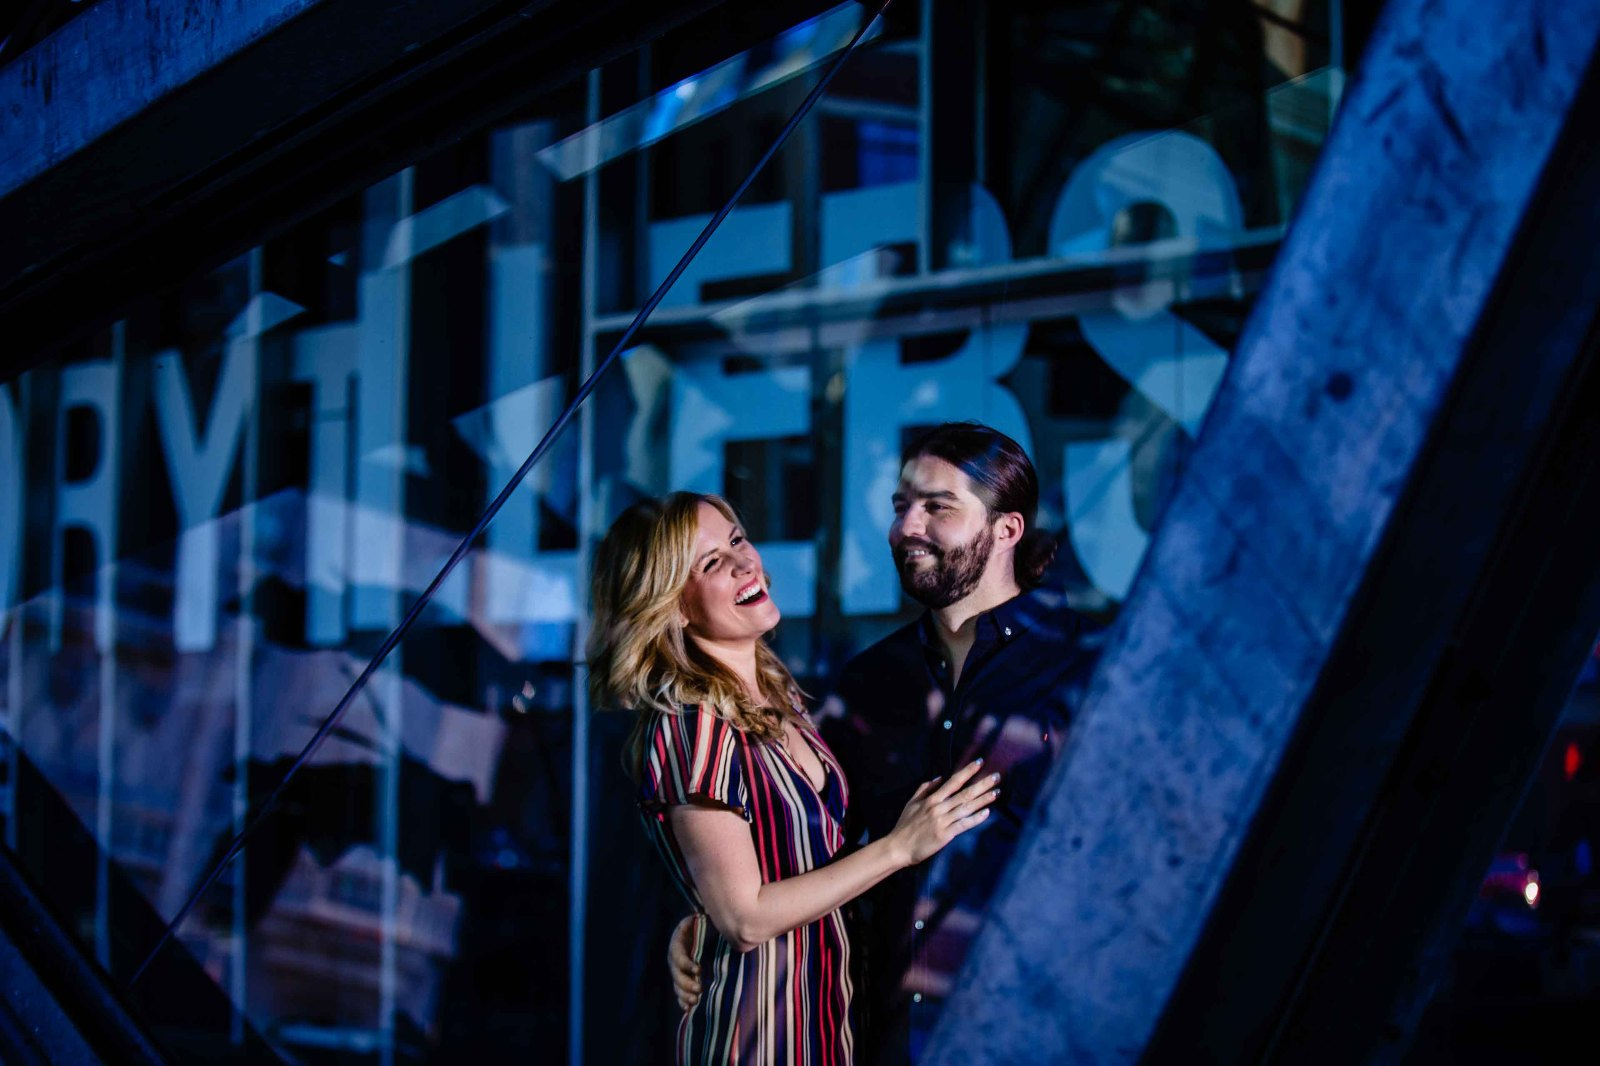 Federation Square Engagement photography